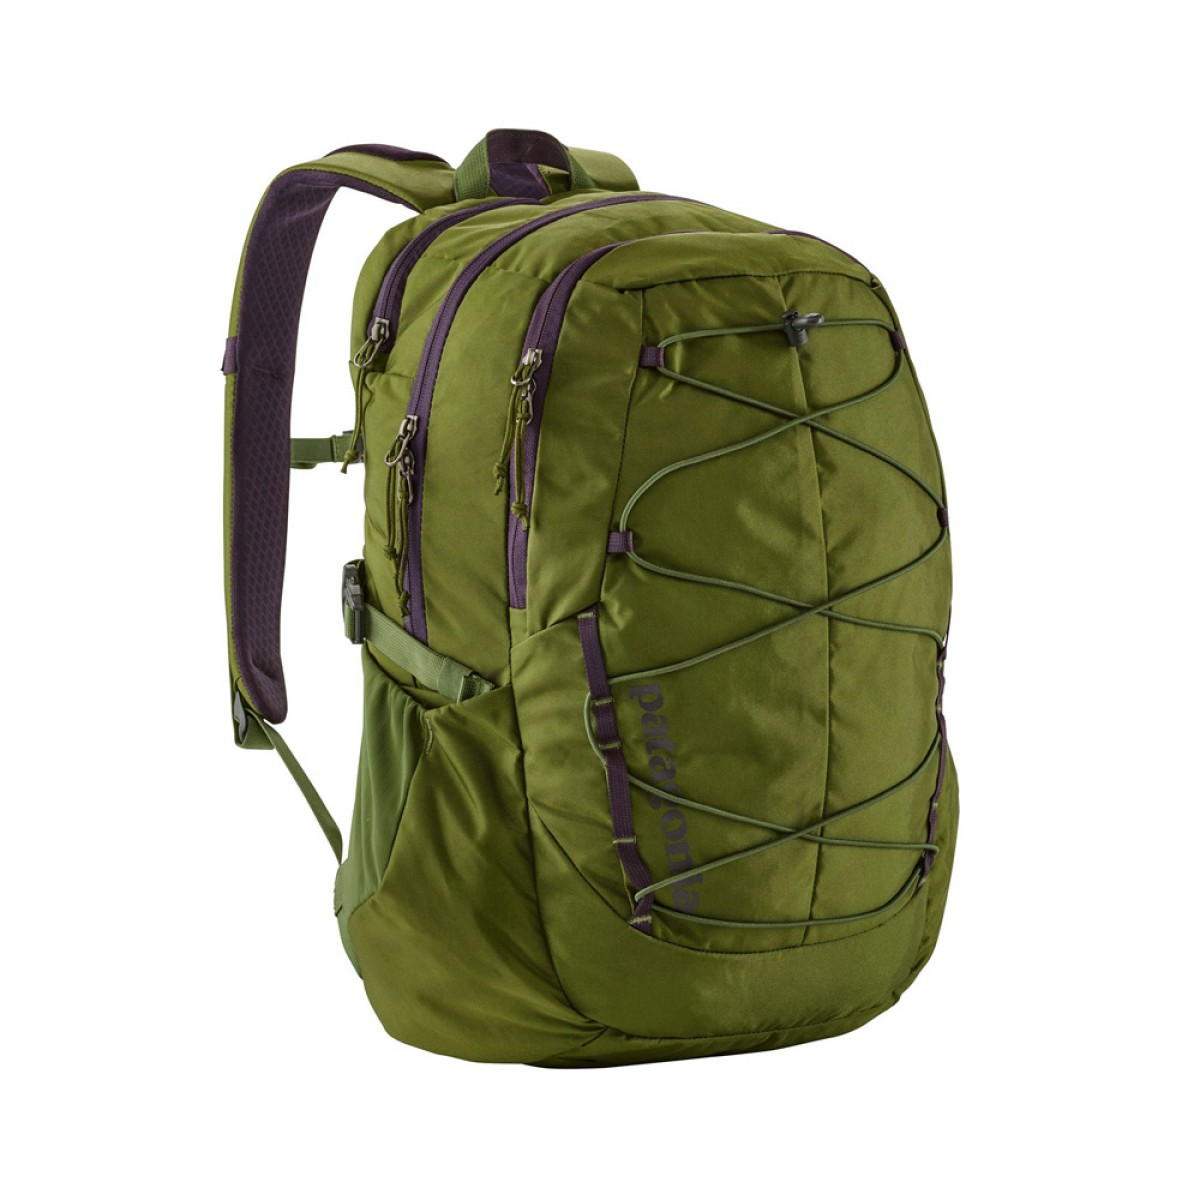 4a80a0c037 Patagonia Chacabuco Backpack 30L